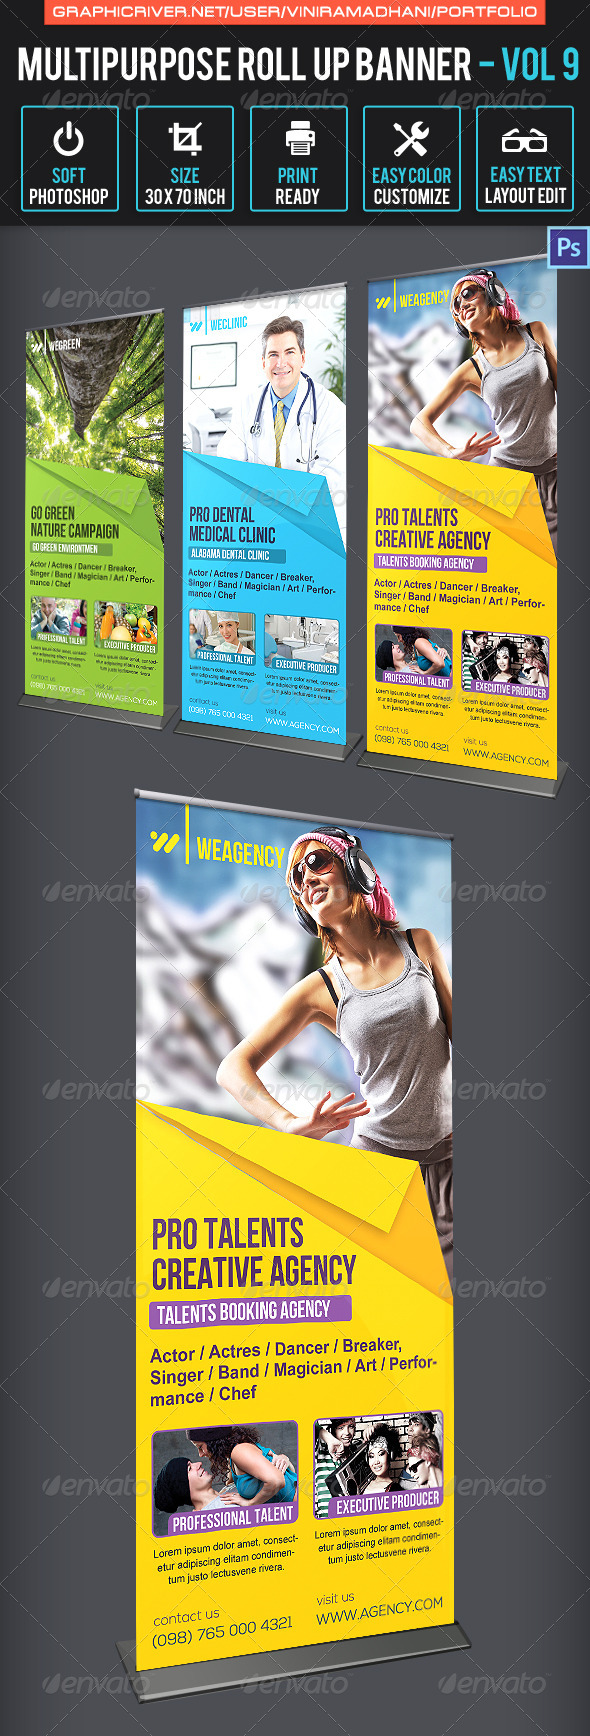 GraphicRiver Multipurpose Roll Up Banner Volume 9 6763916